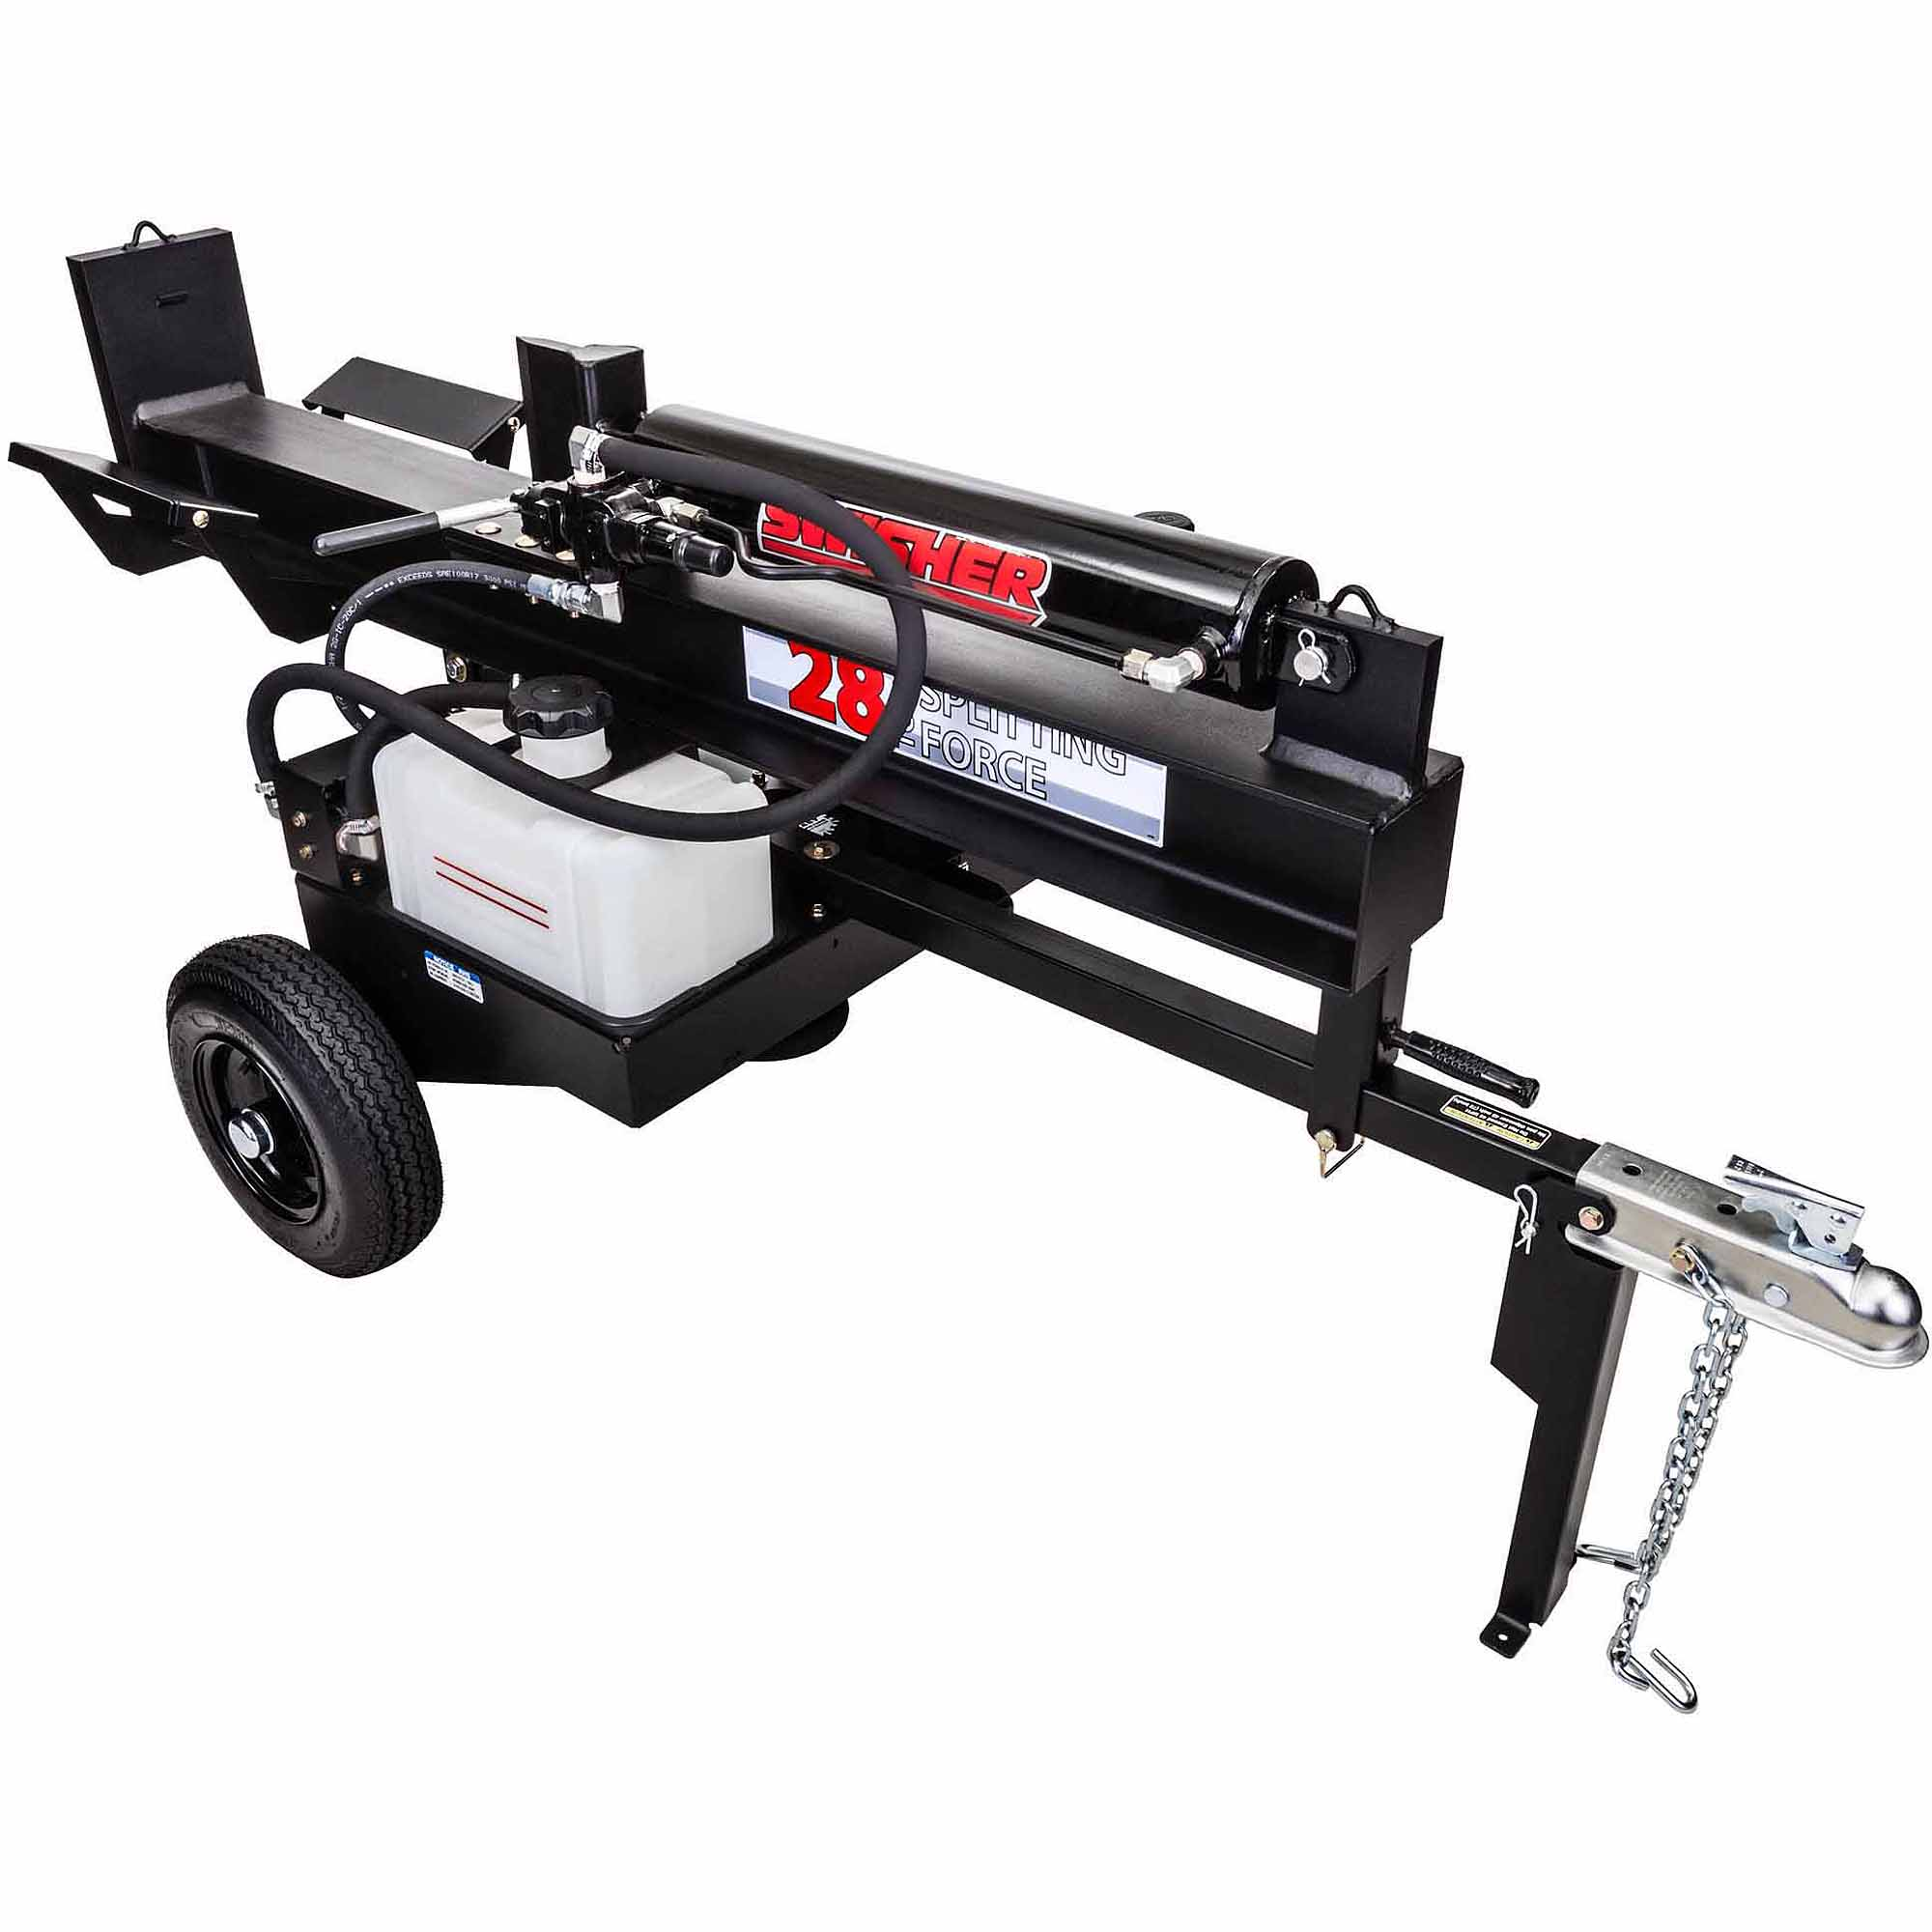 10.5 HP 28-Ton Log Splitter by Swisher Acquisition, Inc